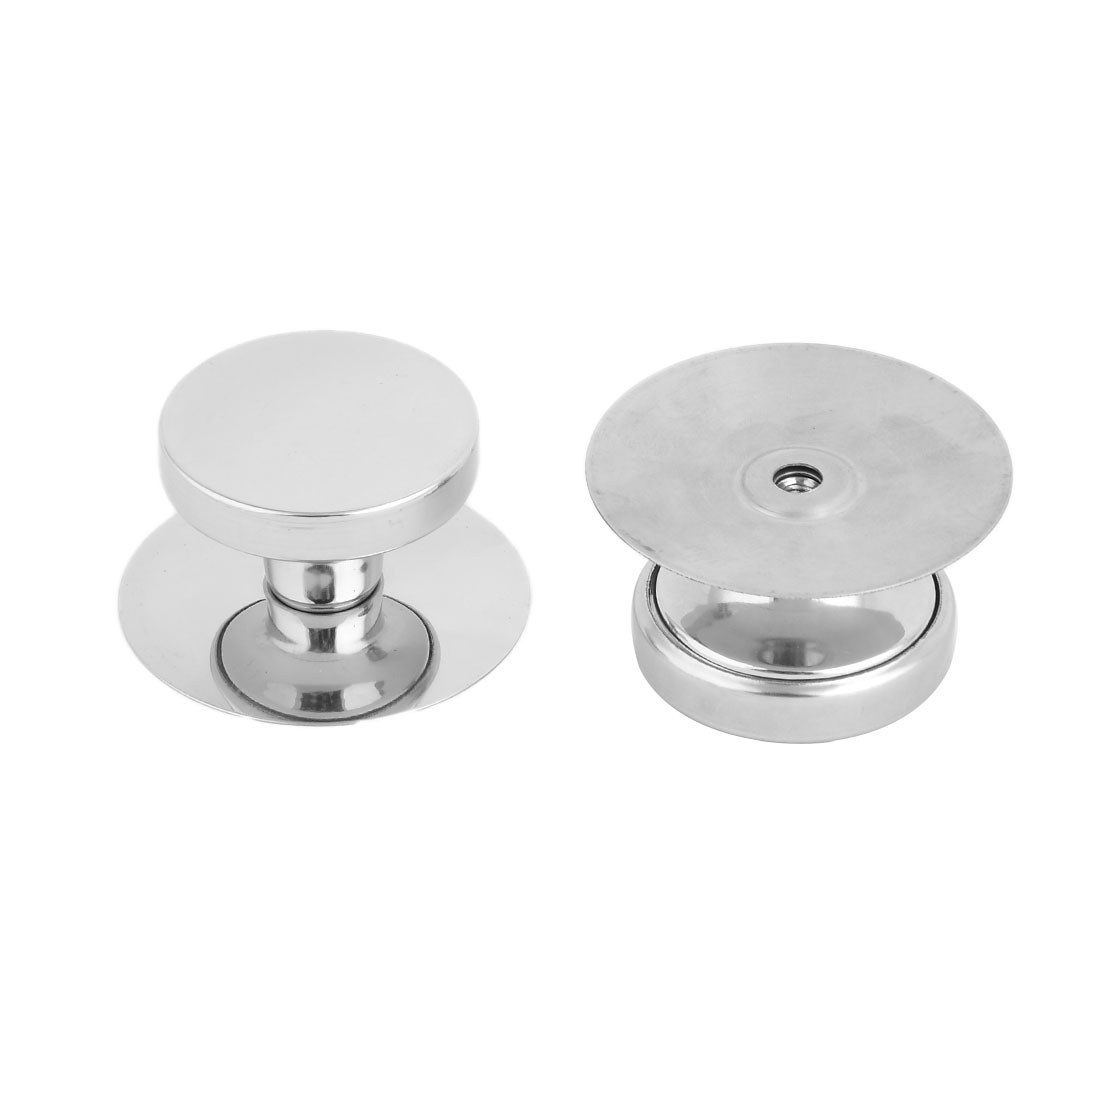 Kitchenware Stainless Steel Heat Resistant Pan Cover Lid Knob Silver Tone 2pcs